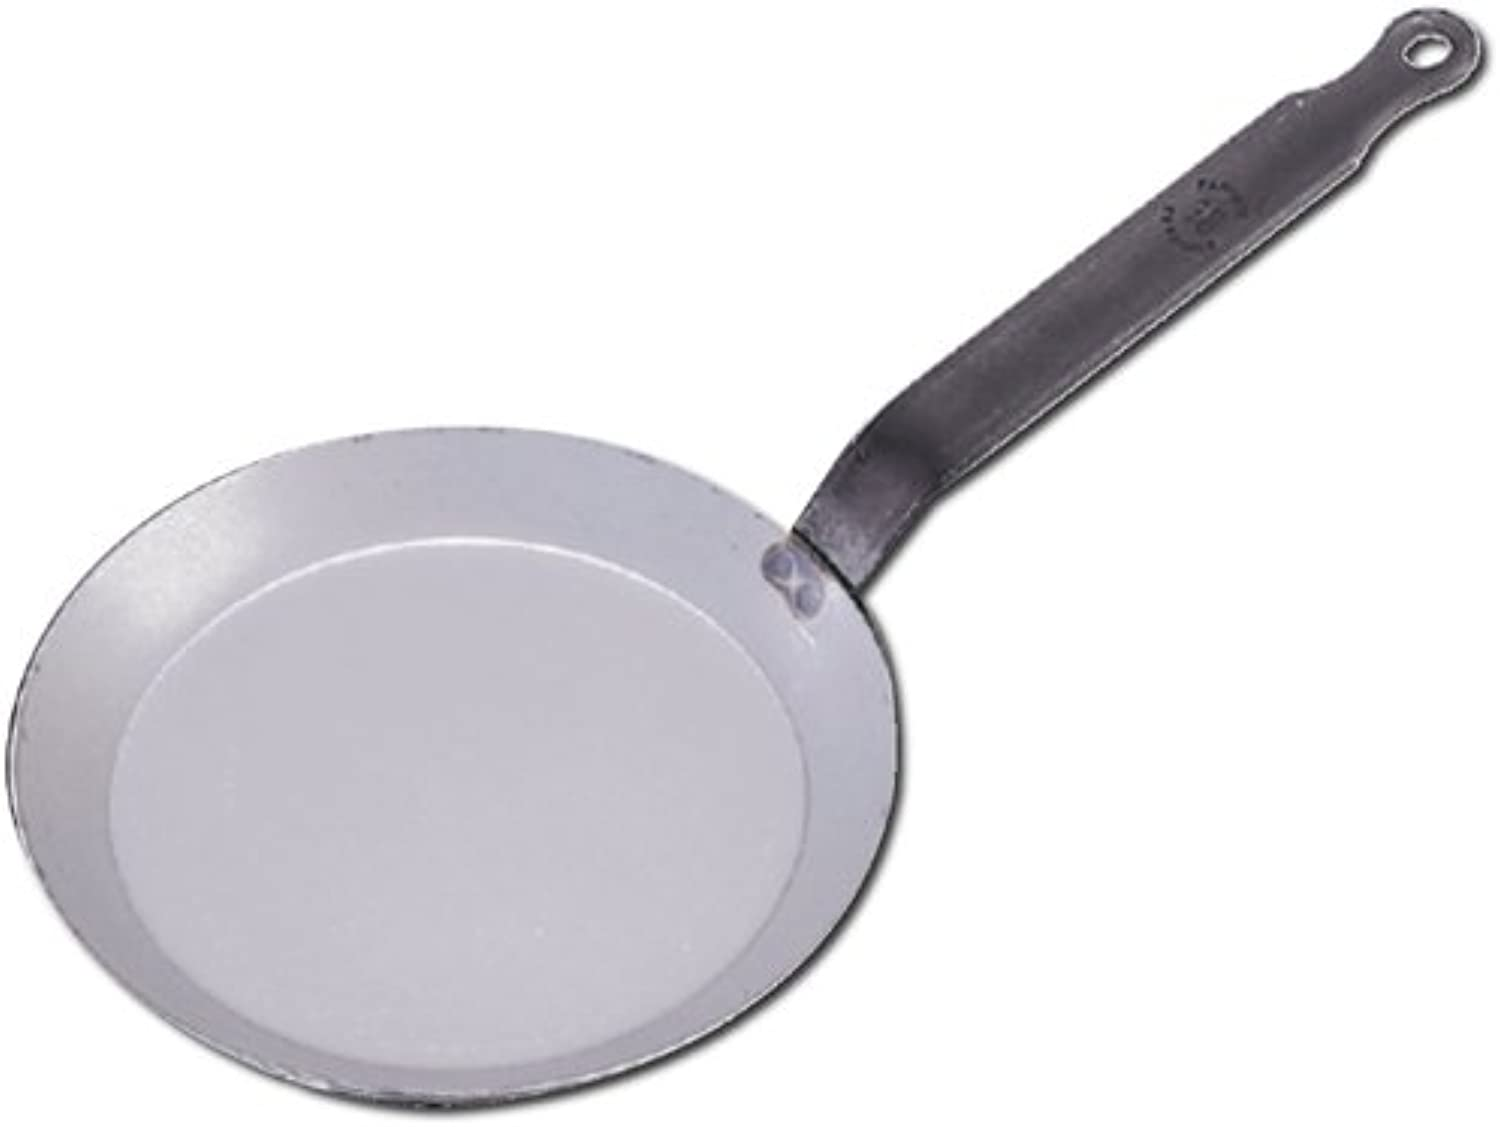 De Buyer Professional 30 cm Carbone Plus White Iron Round Crepe and Pancake Pan 5120.30